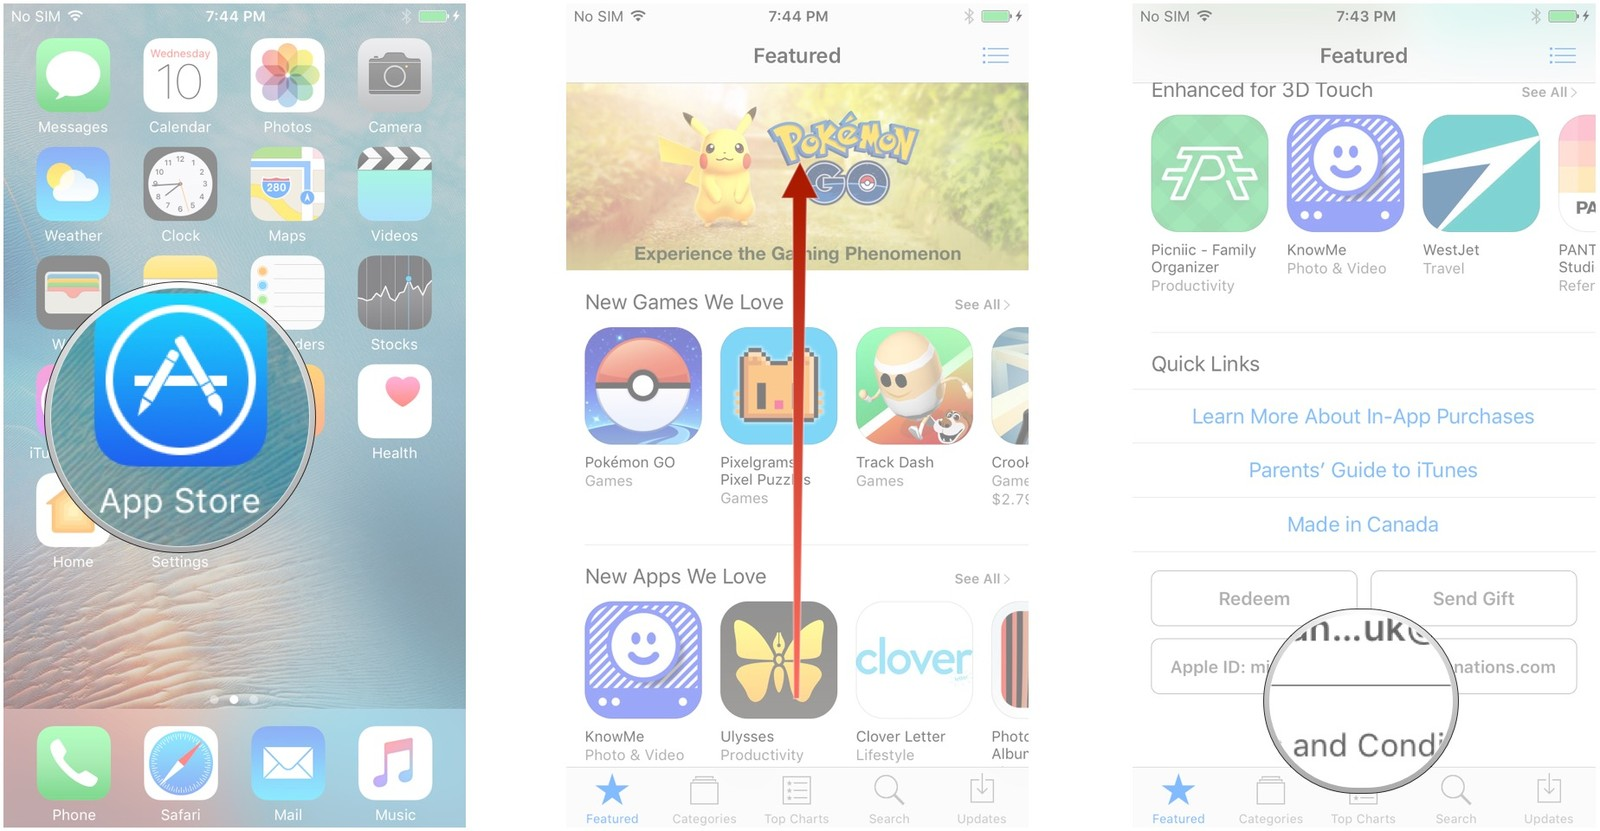 Launch the App Store, scroll to the bottom